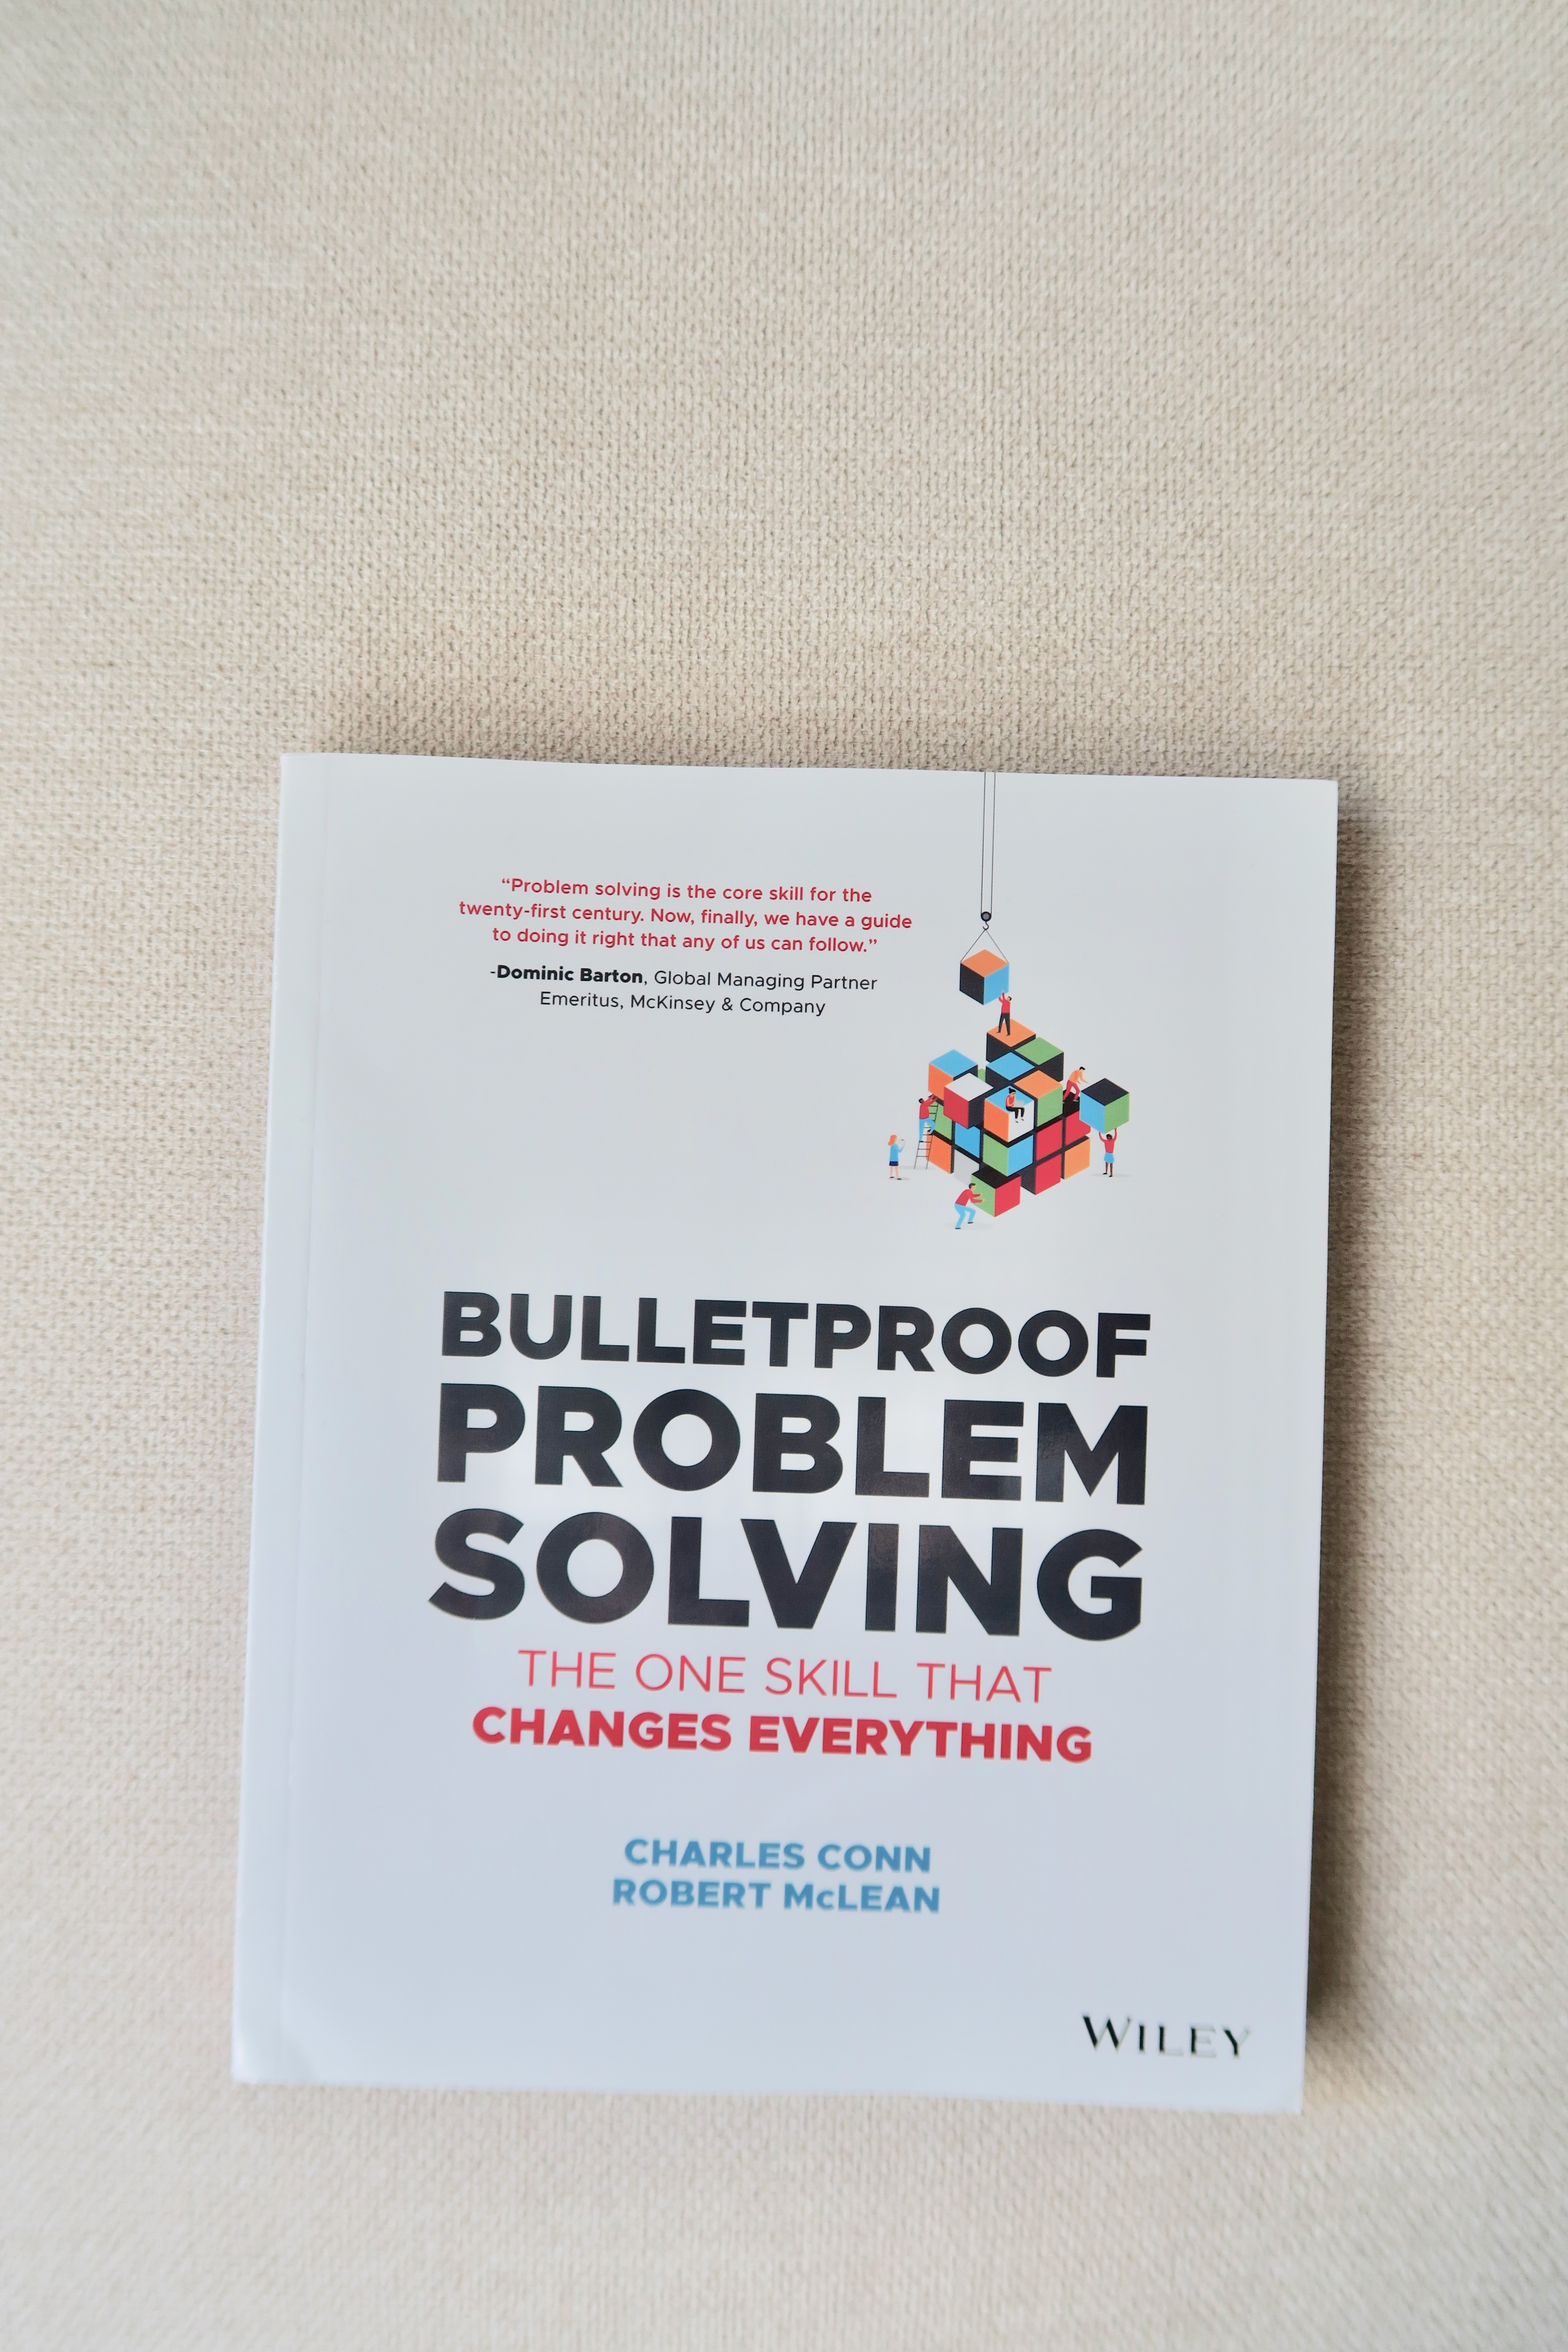 Bulletproof Problem Solving: The One Skill That Changes Everything by Charles Conn, Robert McLean